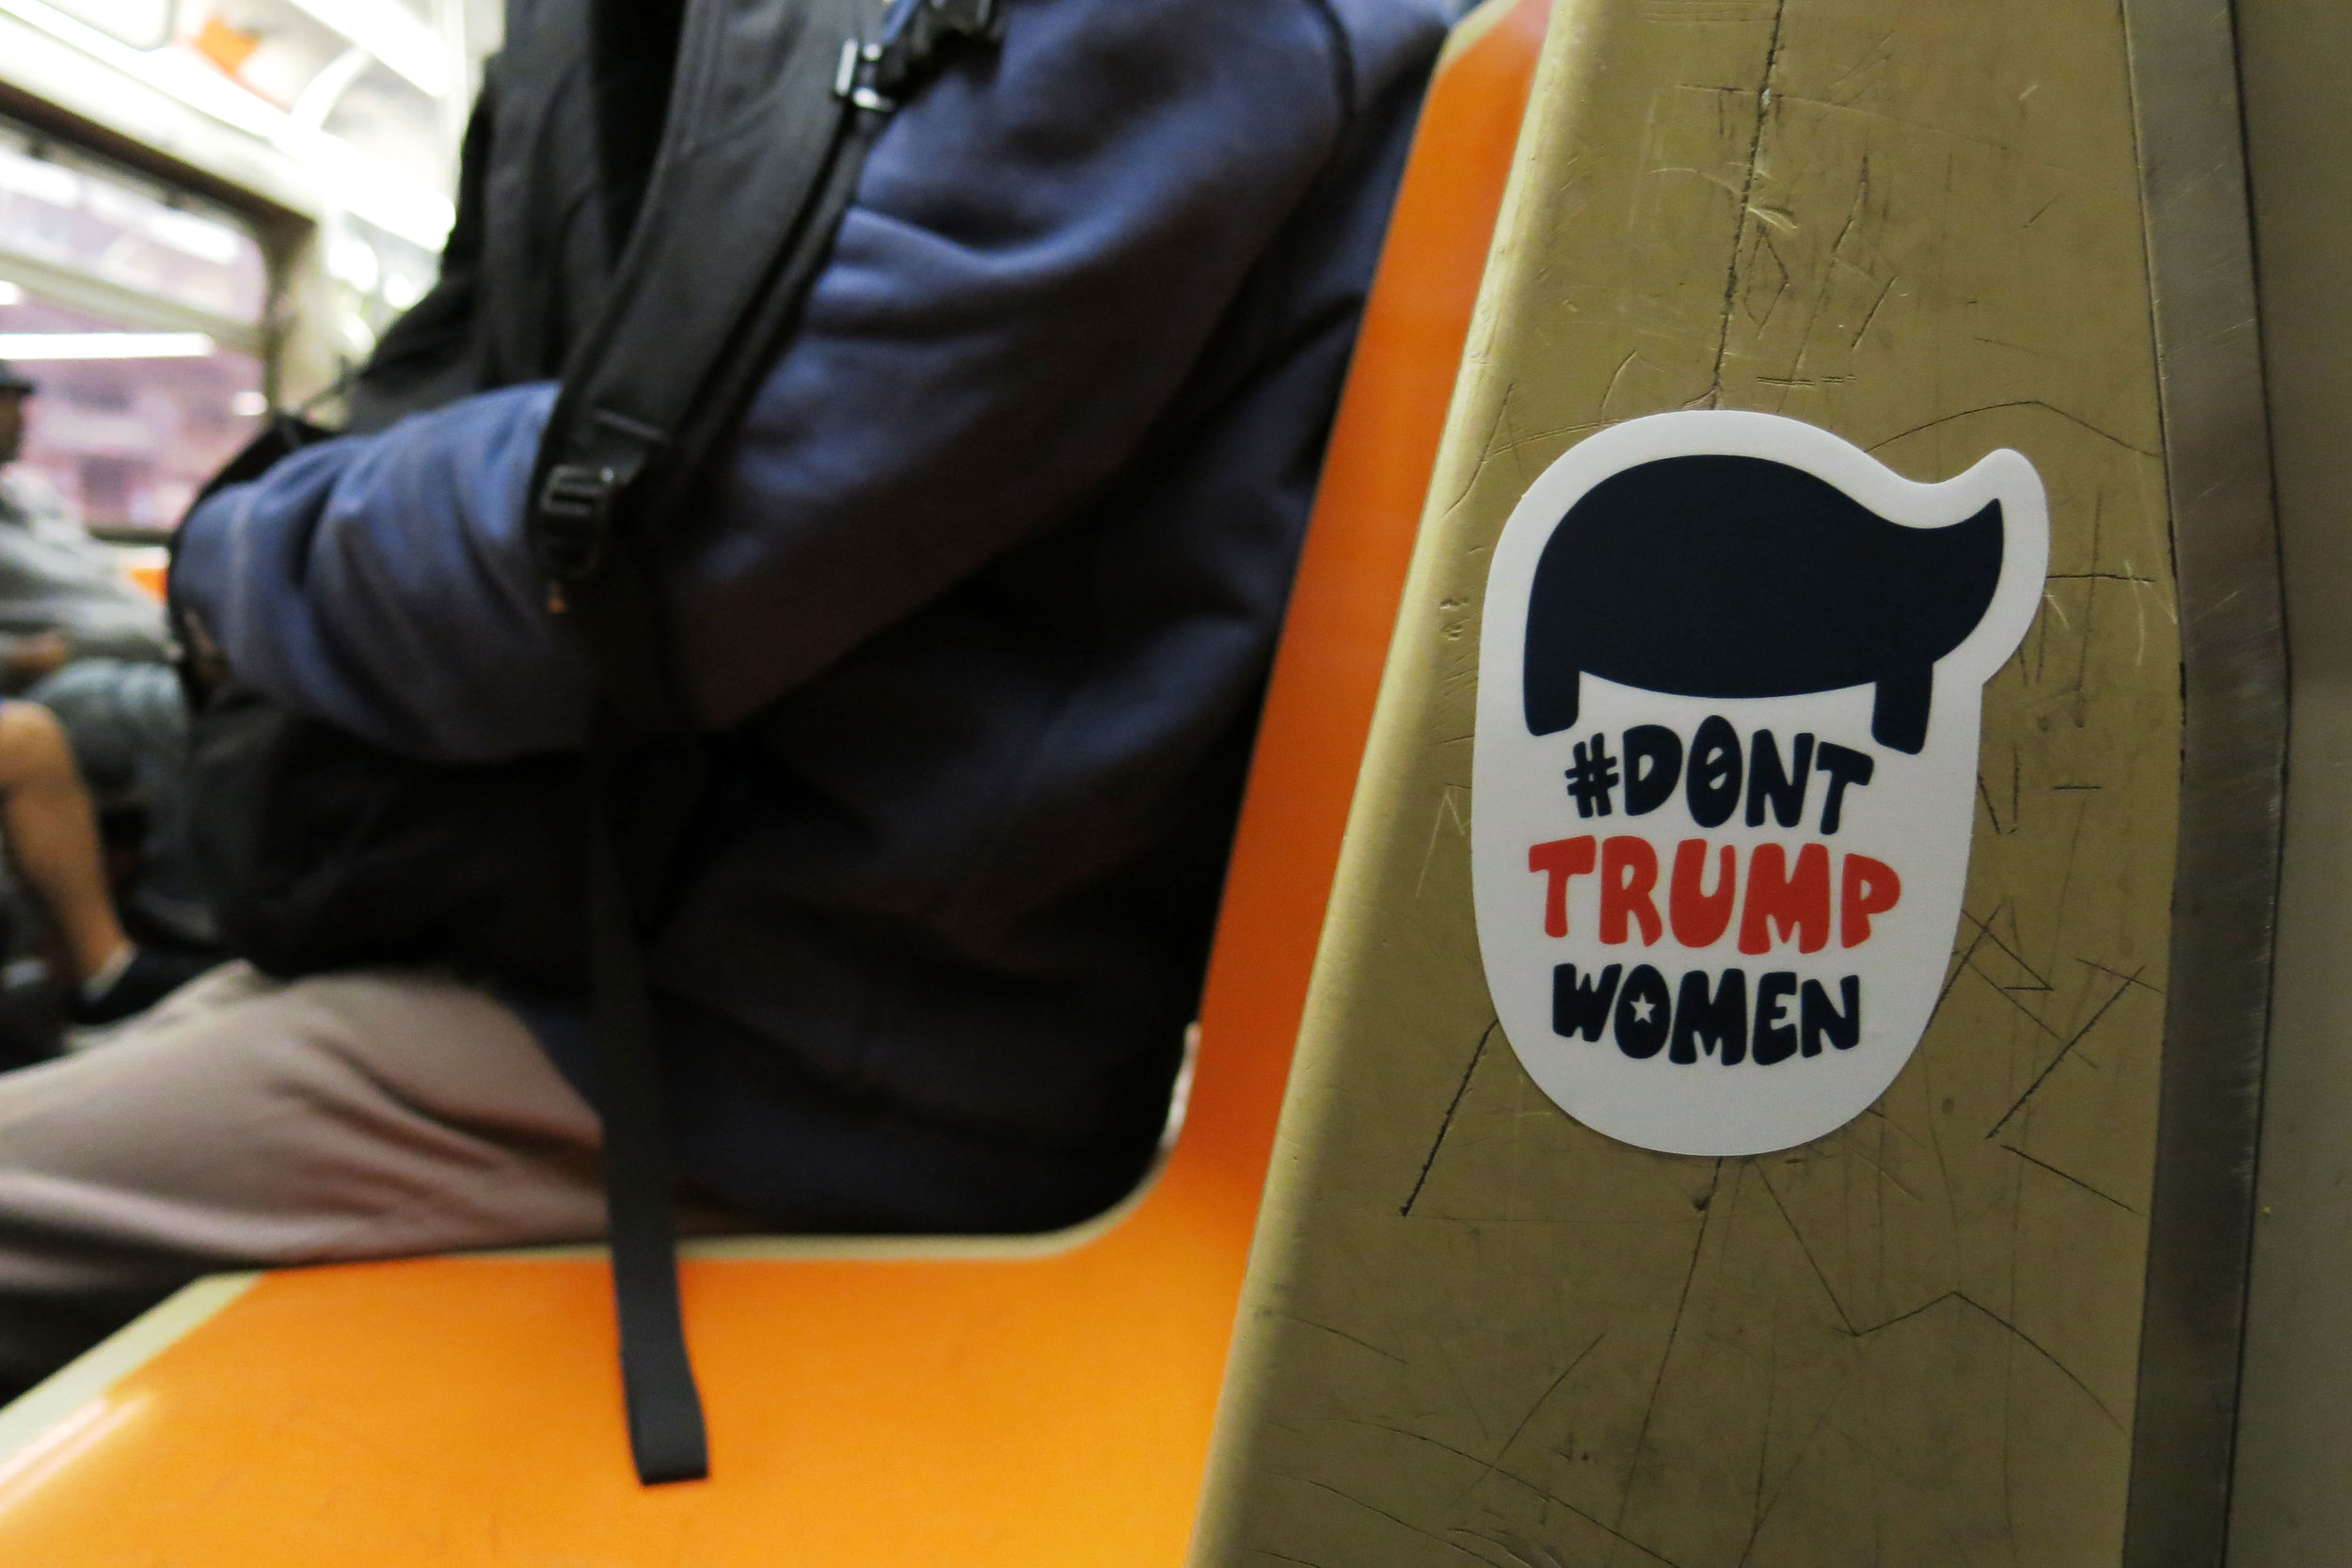 #DontTrumpWomen Trump Head Sticker  D Train, New York, NY ©2016-2017 The Femme Project